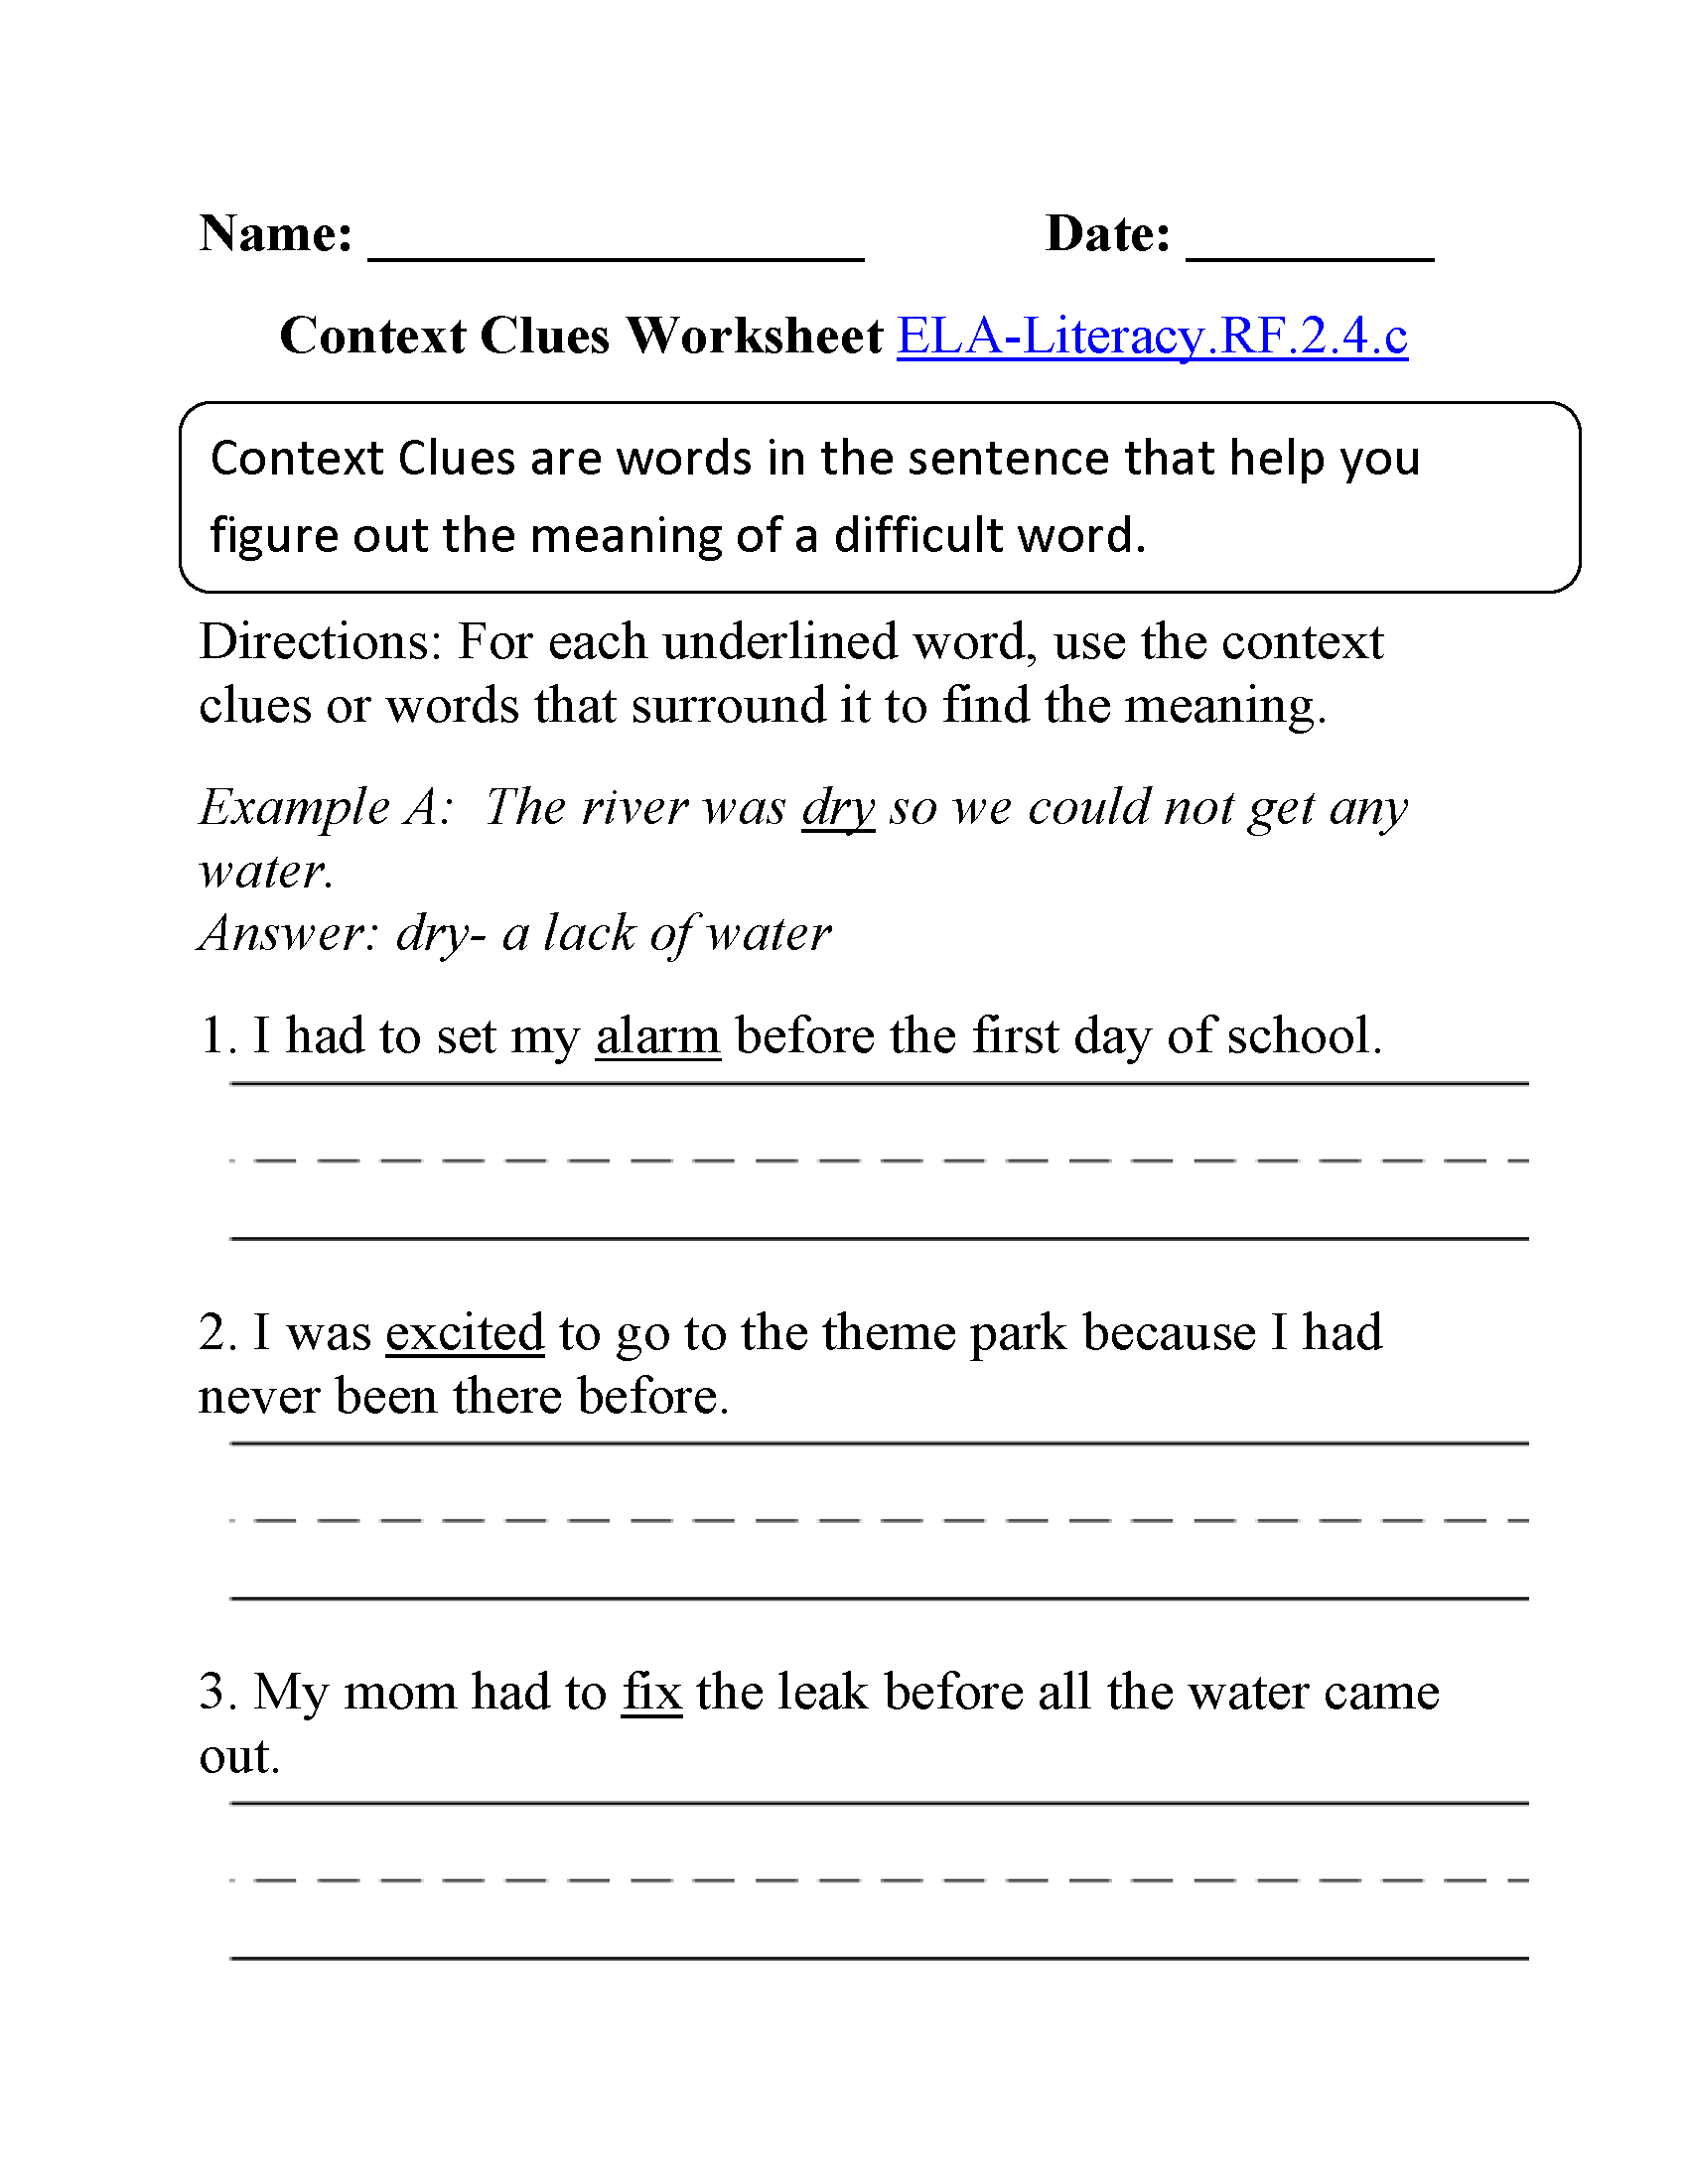 Free Worksheet Context Clues Worksheets 3rd Grade second grade reading worksheets context clues the best and most printables 3rd safarmedis